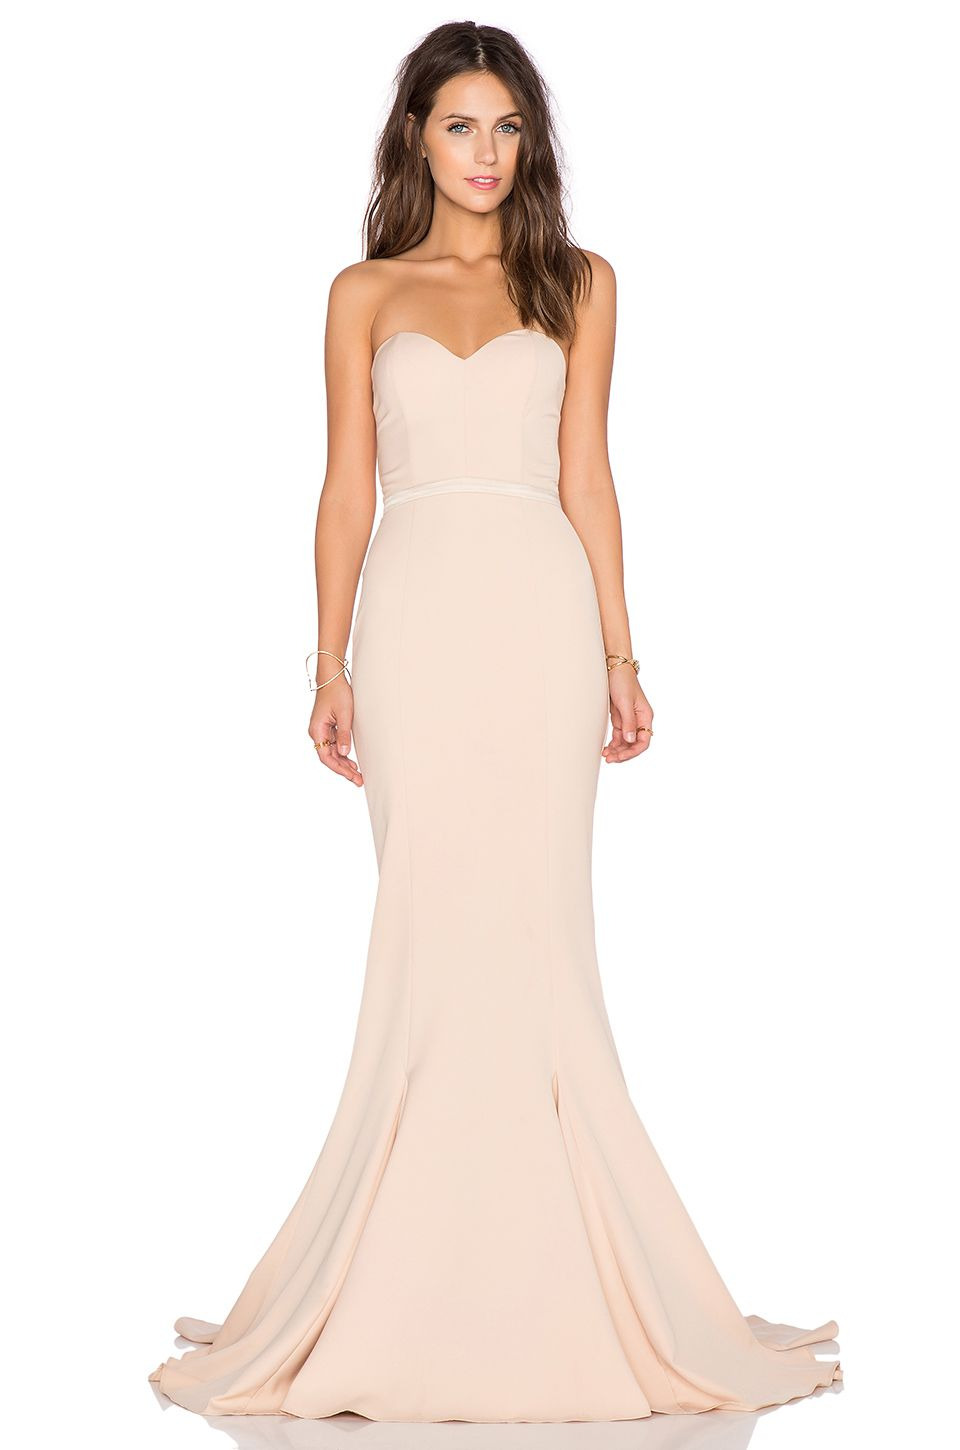 Elle zeitoune arianna gown in nude revolve fashion fix shop for elle zeitoune arianna gown in nude at revolve free day shipping and returns 30 day price match guarantee ombrellifo Choice Image